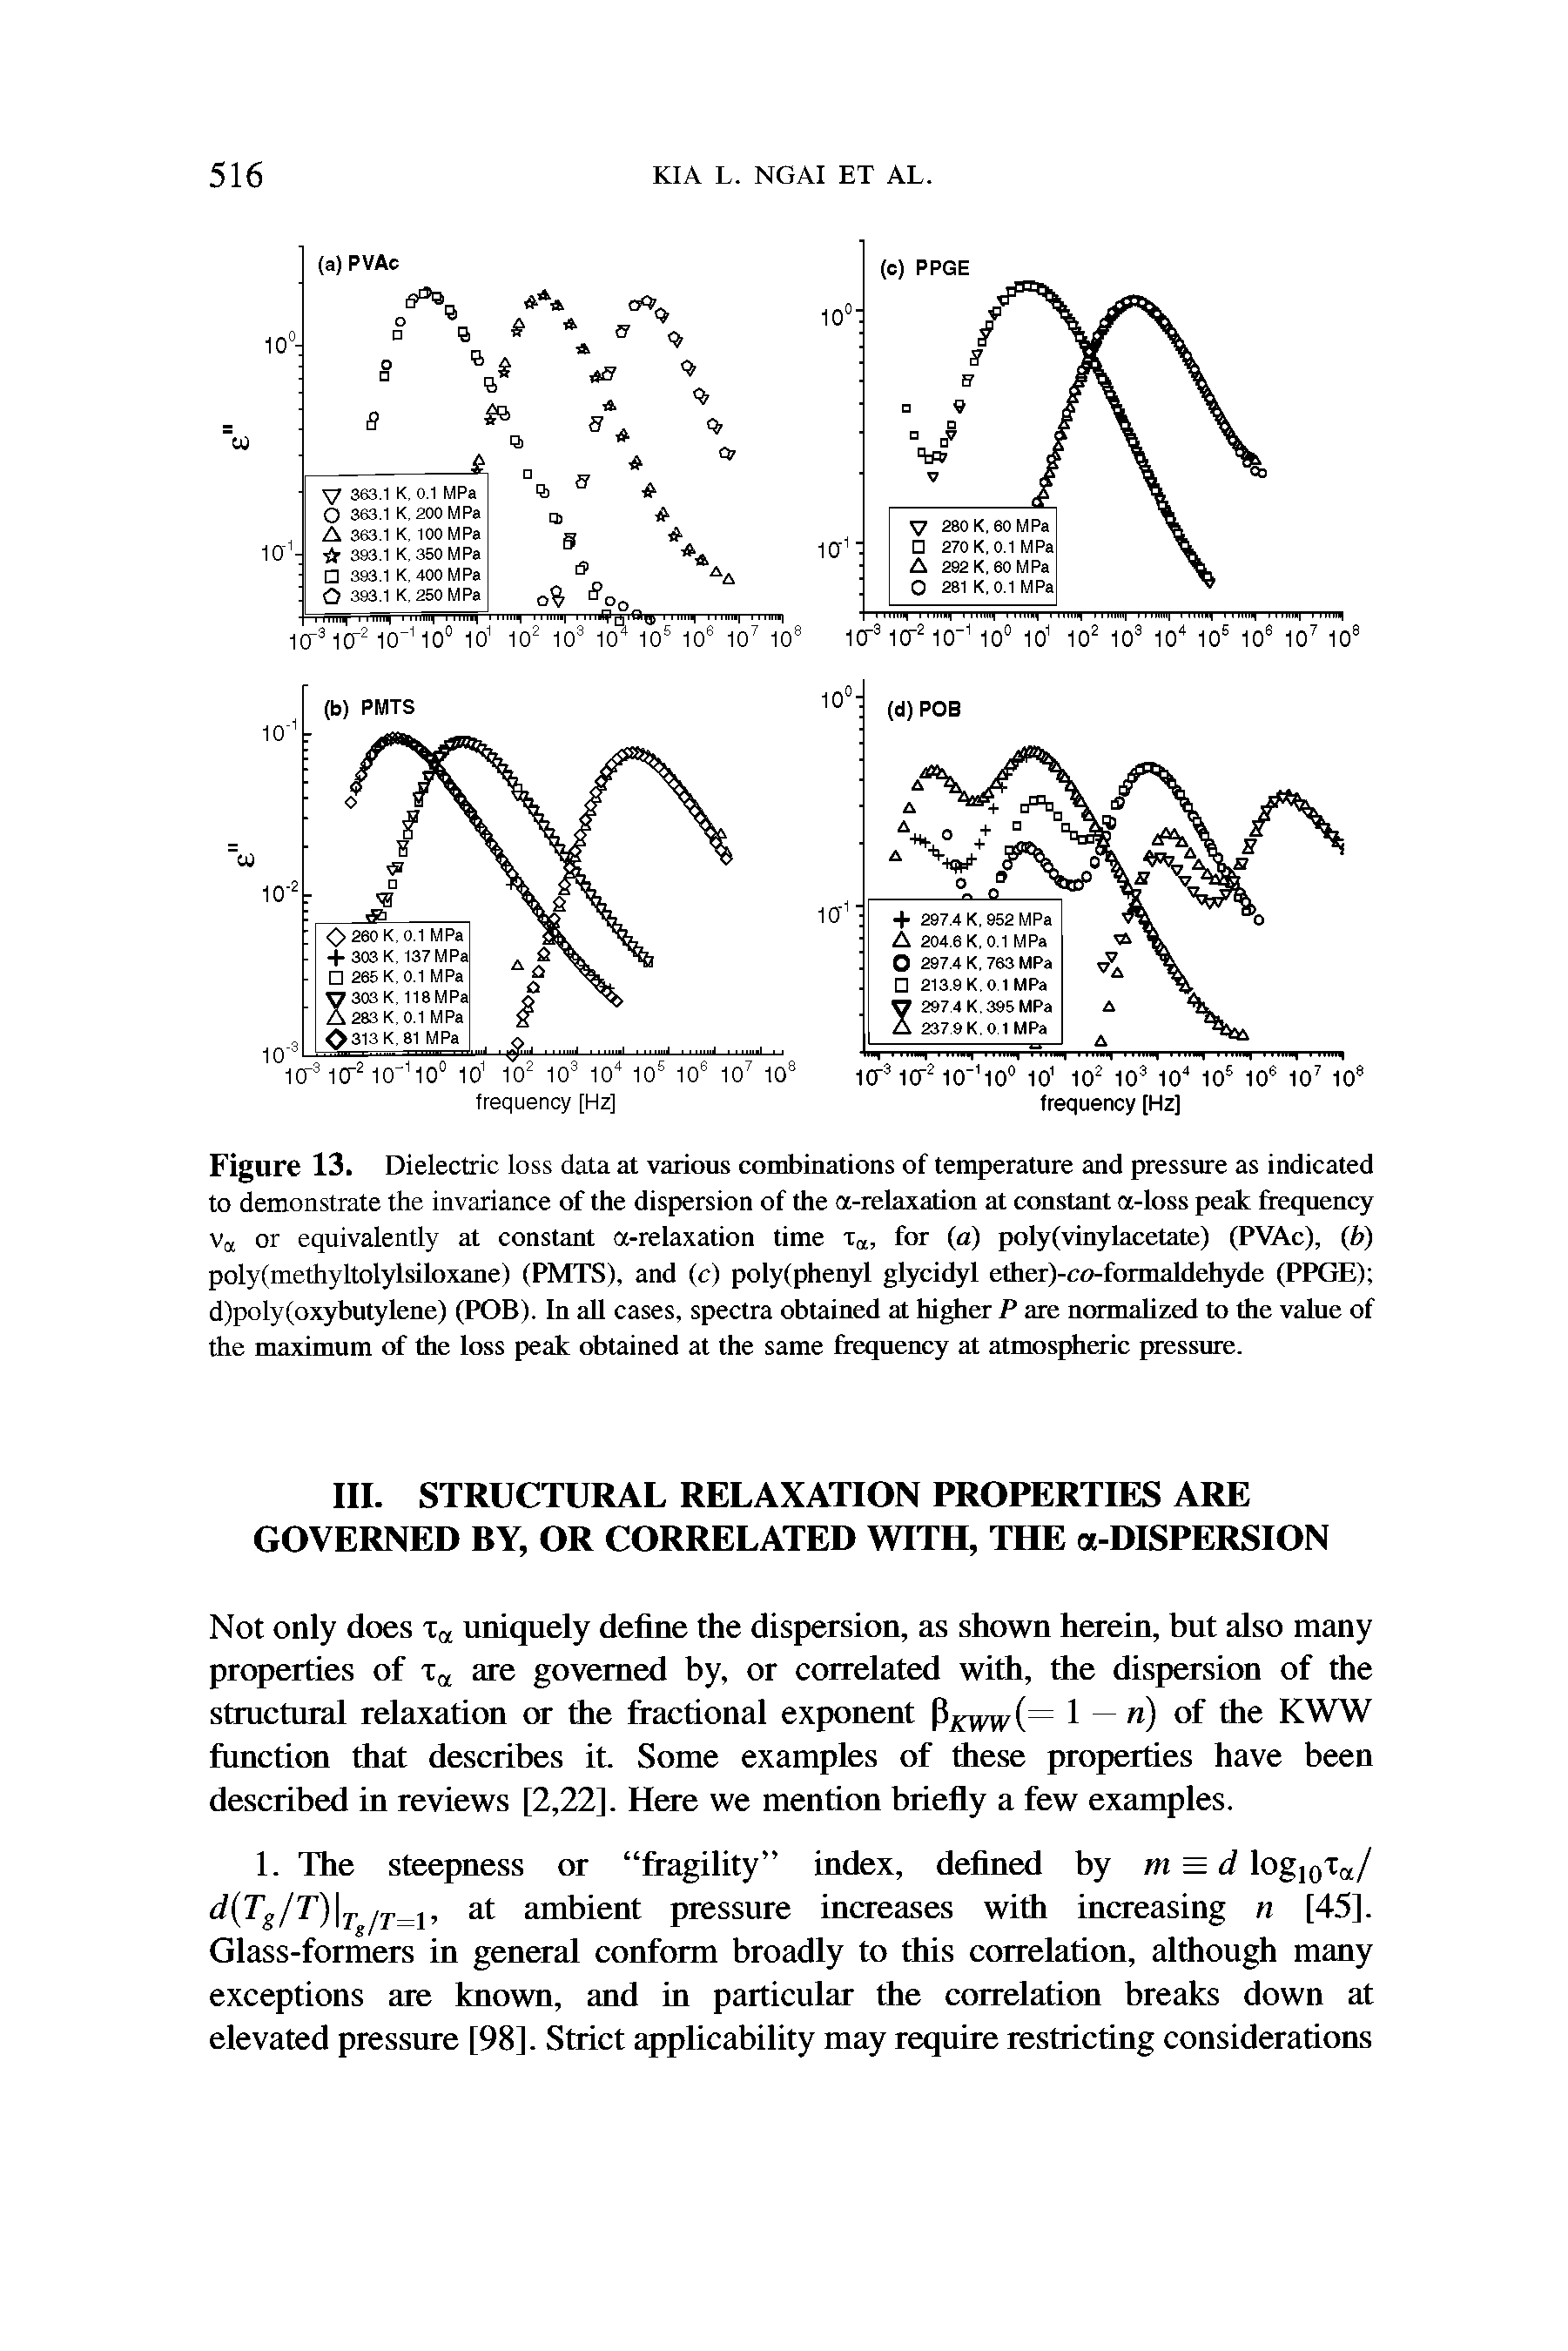 "Figure 13. <a href=""/info/dielectric_loss"">Dielectric loss</a> data at various combinations of temperature and pressure as indicated to demonstrate the invariance of the dispersion of the a-relaxation at constant a-<a href=""/info/loss_peak"">loss peak</a> frequency va or equivalently at constant a-<a href=""/info/relaxation_time_in_nmr"">relaxation time</a> for (a) <a href=""/info/poly_vinylacetate"">poly(vinylacetate</a>) (PVAc), (b) poly(methyltolylsiloxane) (PMTS), and (c) polyfphenyl <a href=""/info/glycidyl_ethers"">glycidyl ether</a>)-co-formaldehyde (PPGE) d)poly(oxy butylene) (POB). In all cases, spectra obtained at higher P are normalized to the value of the maximum of the <a href=""/info/loss_peak"">loss peak</a> obtained at the same frequency at atmospheric pressure."